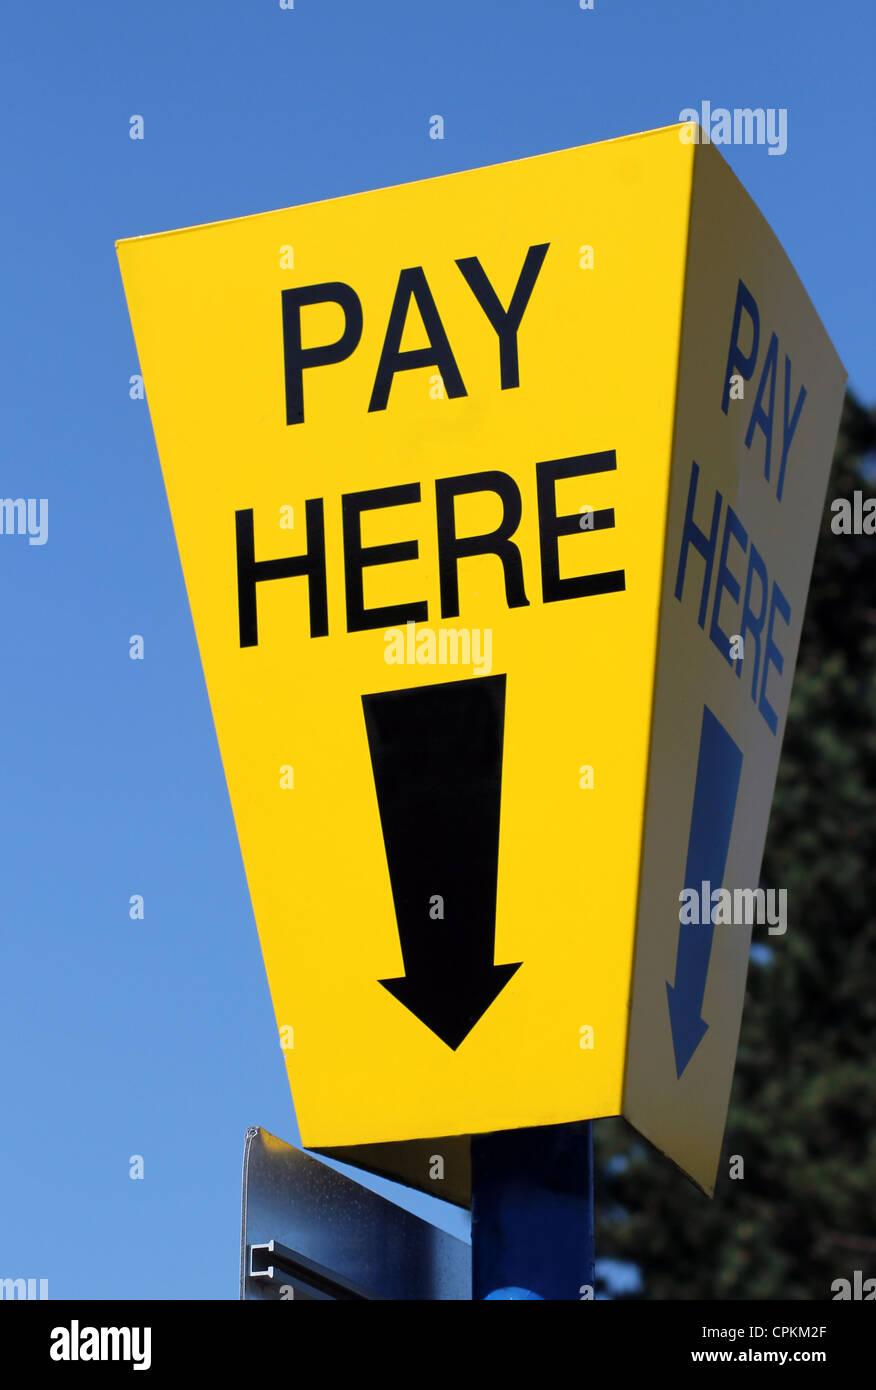 Yellow car parking pay here sign with blue sky background and directional arrow. - Stock Image